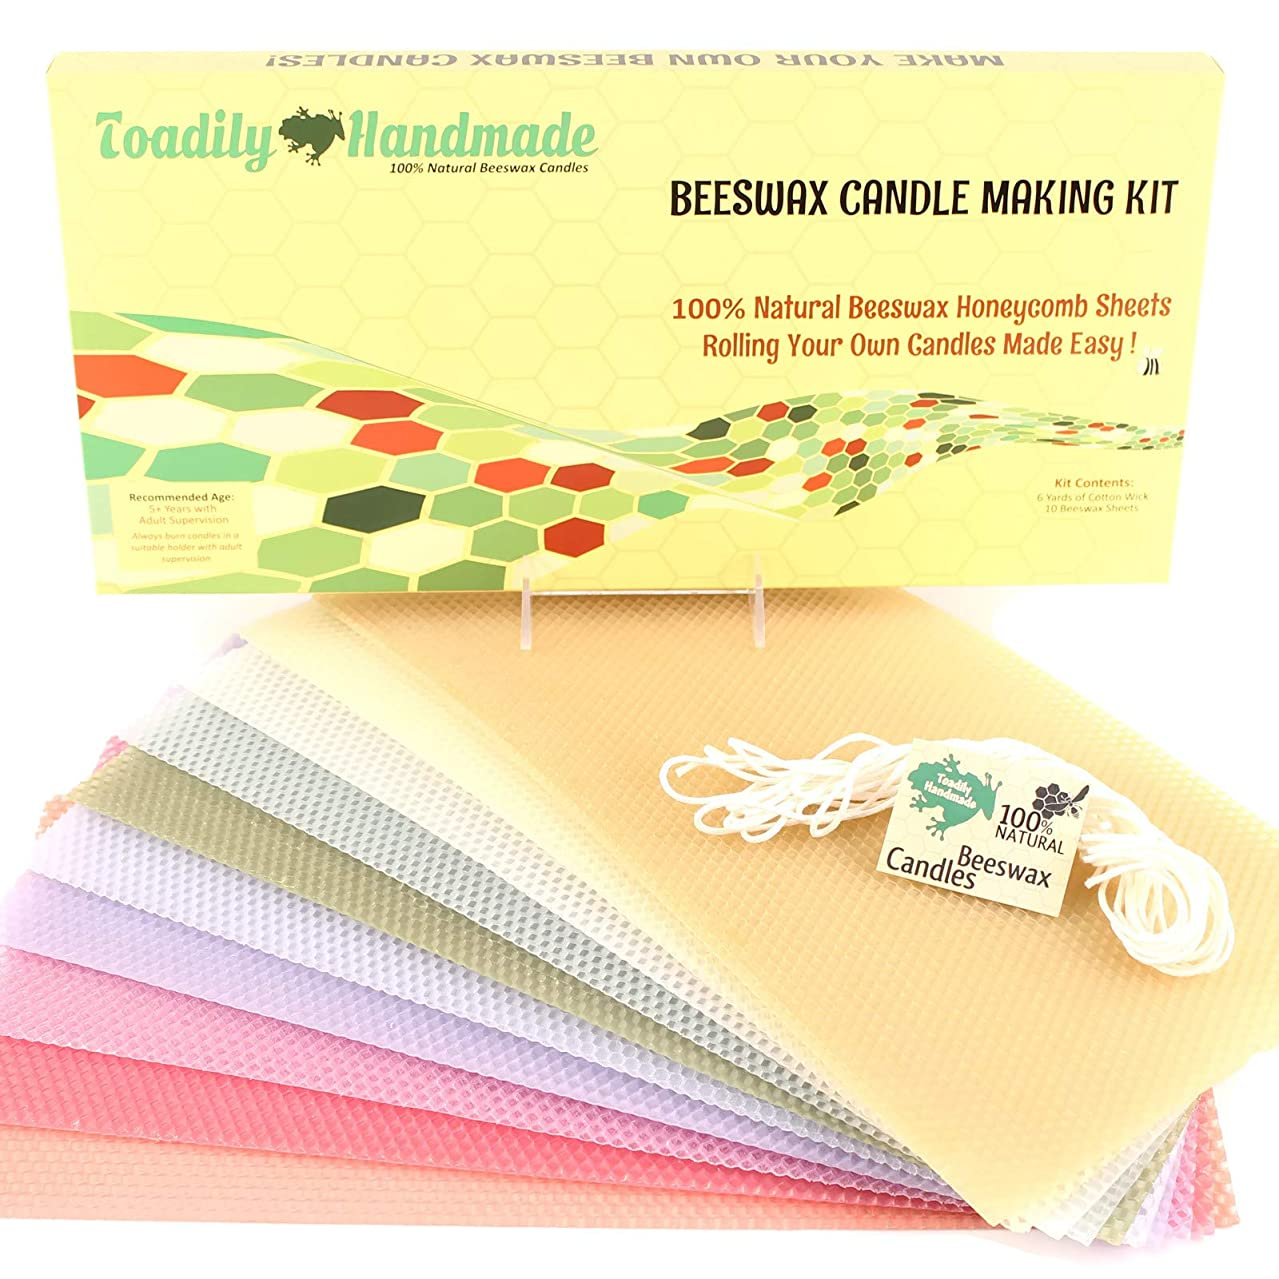 Make Your Own Beeswax Candle Kit - Includes 10 Pastel Colored Full Size 100% Beeswax Honeycomb Sheets and Approx. 6 Yards (18 Feet) of Cotton Wick.